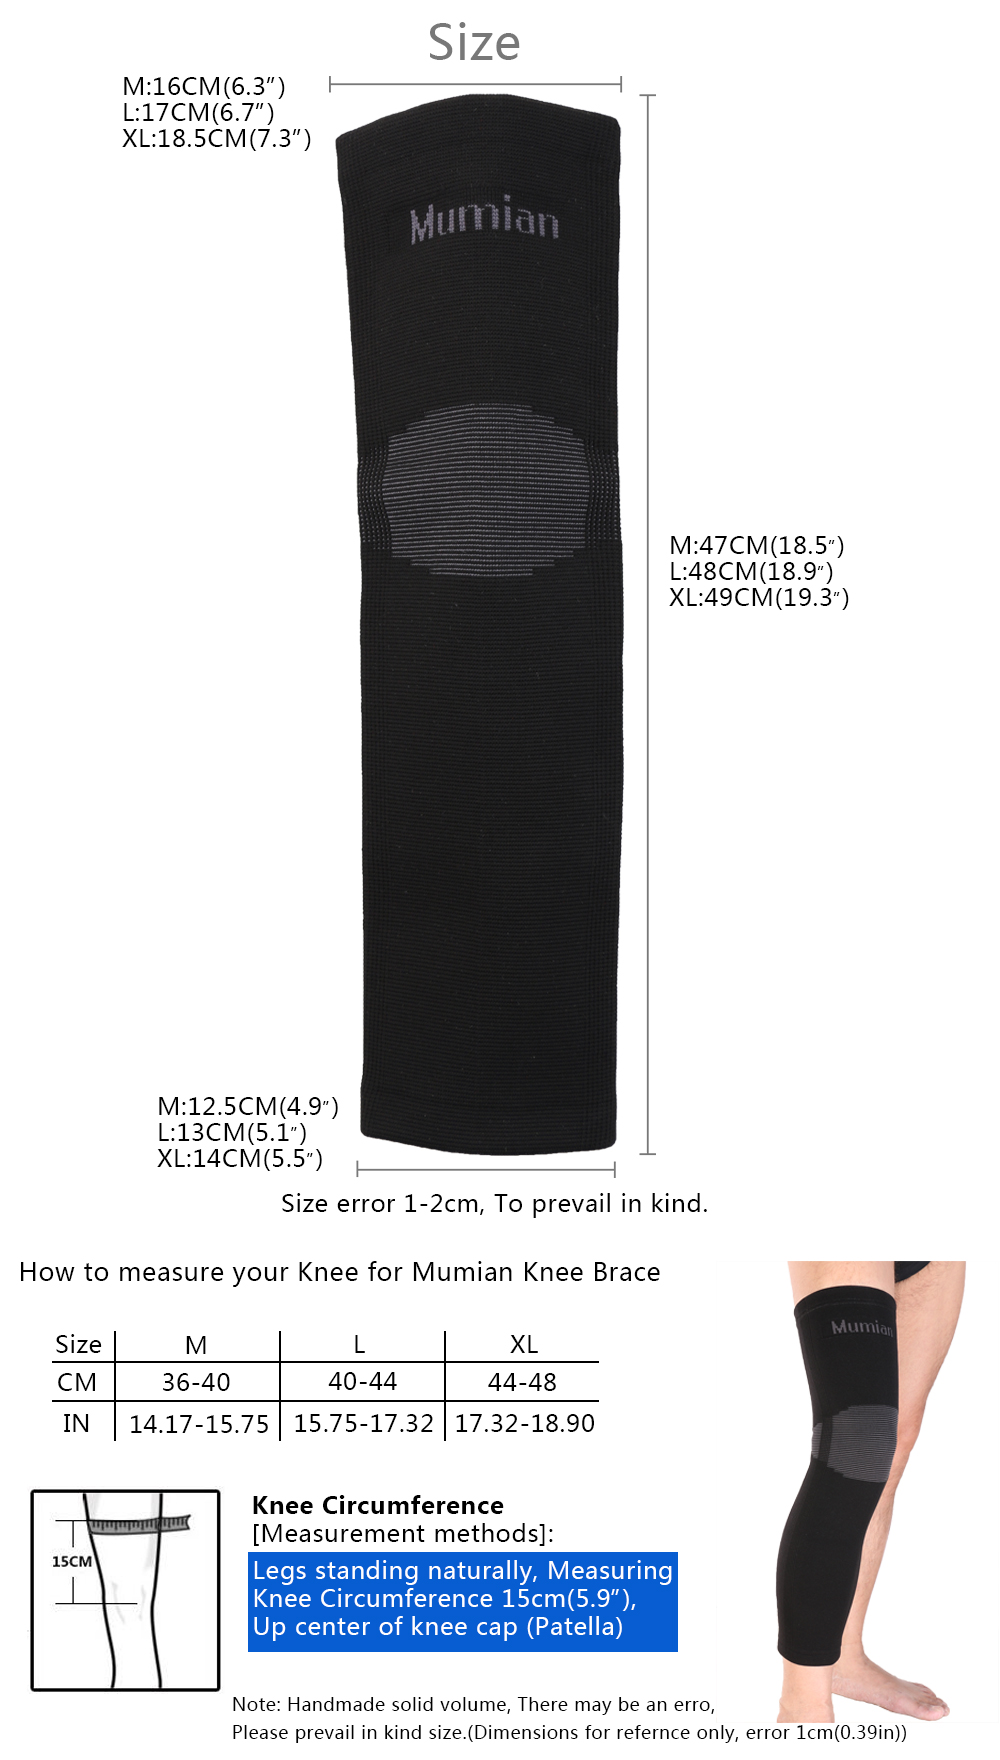 Mumian A06 Classic knitting Warm Sports Long Knee Pad Knee Brace Support Sleeve - 1PC